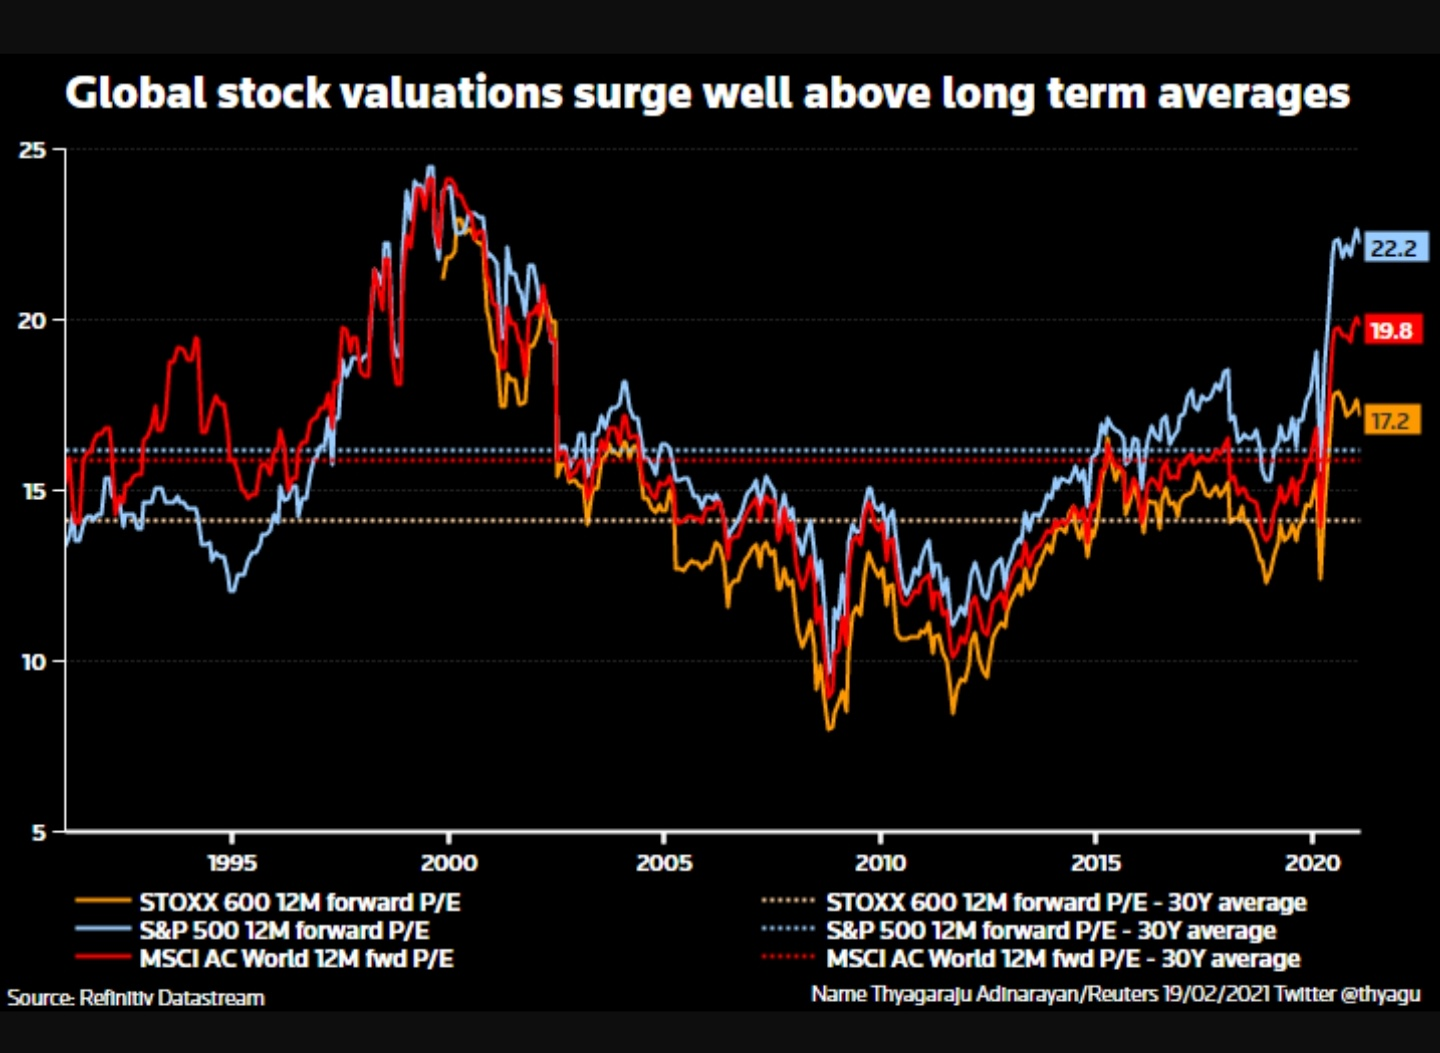 Global stock valuations surge